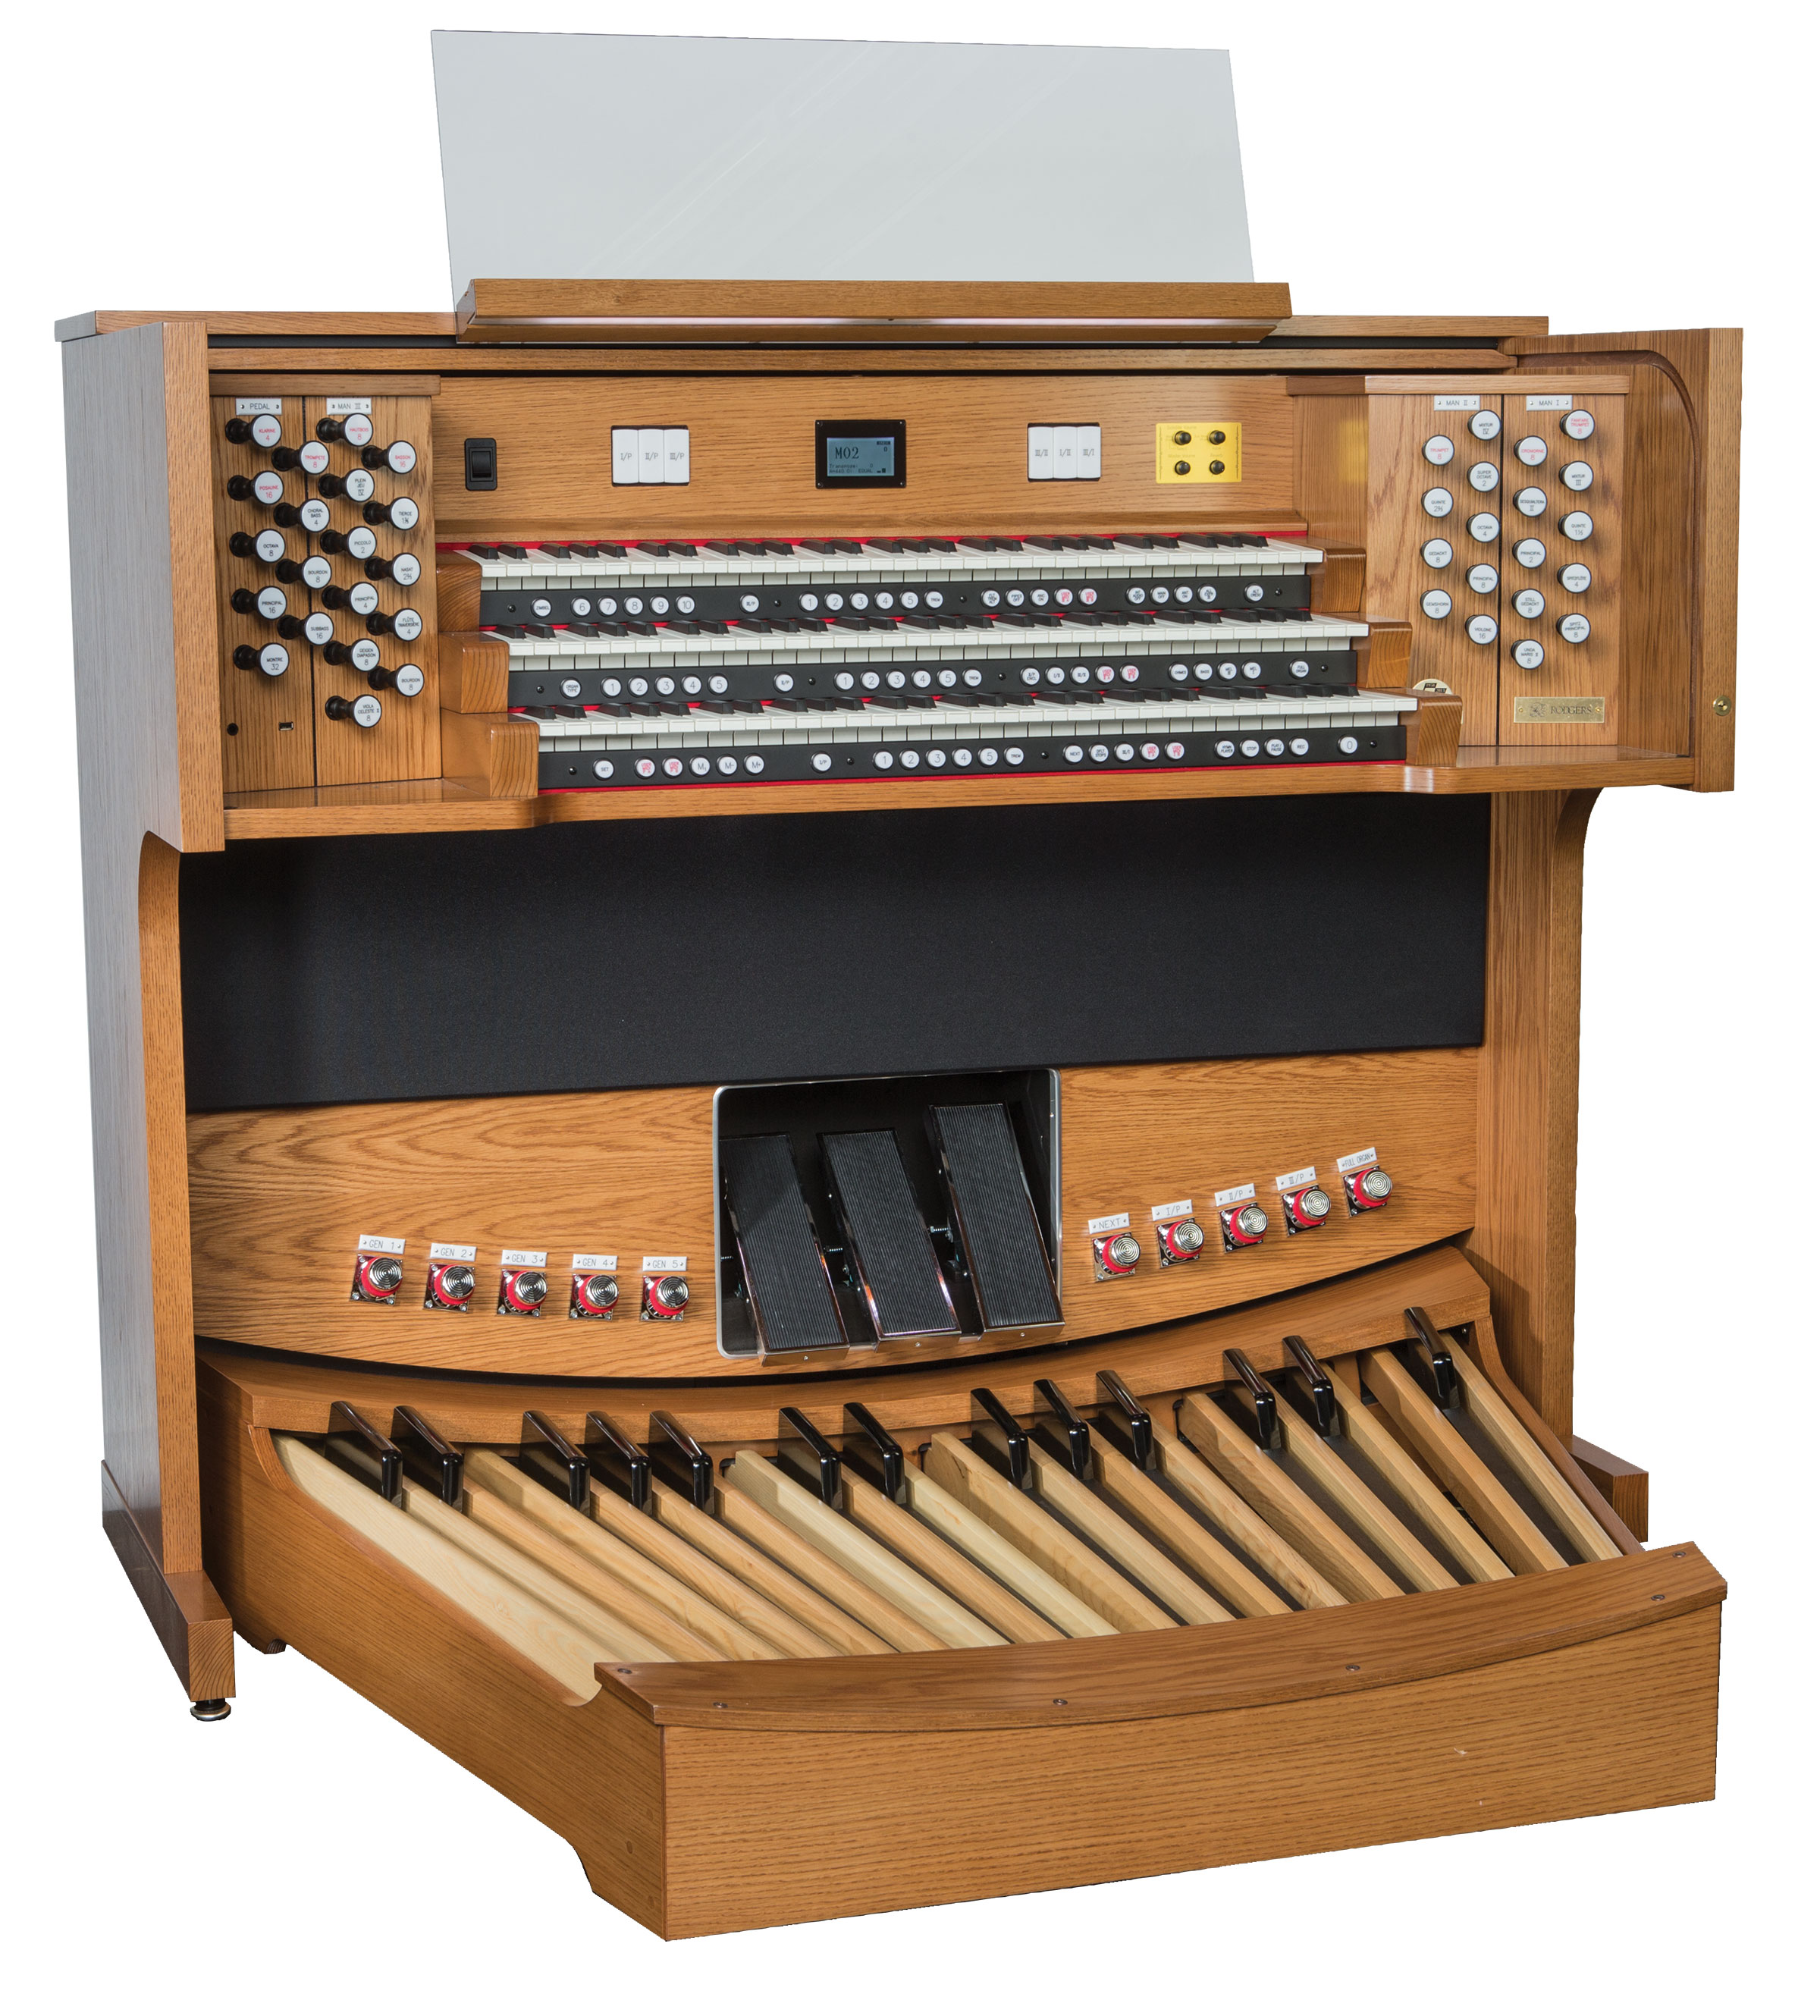 Rodgers Organ Artist Series 599